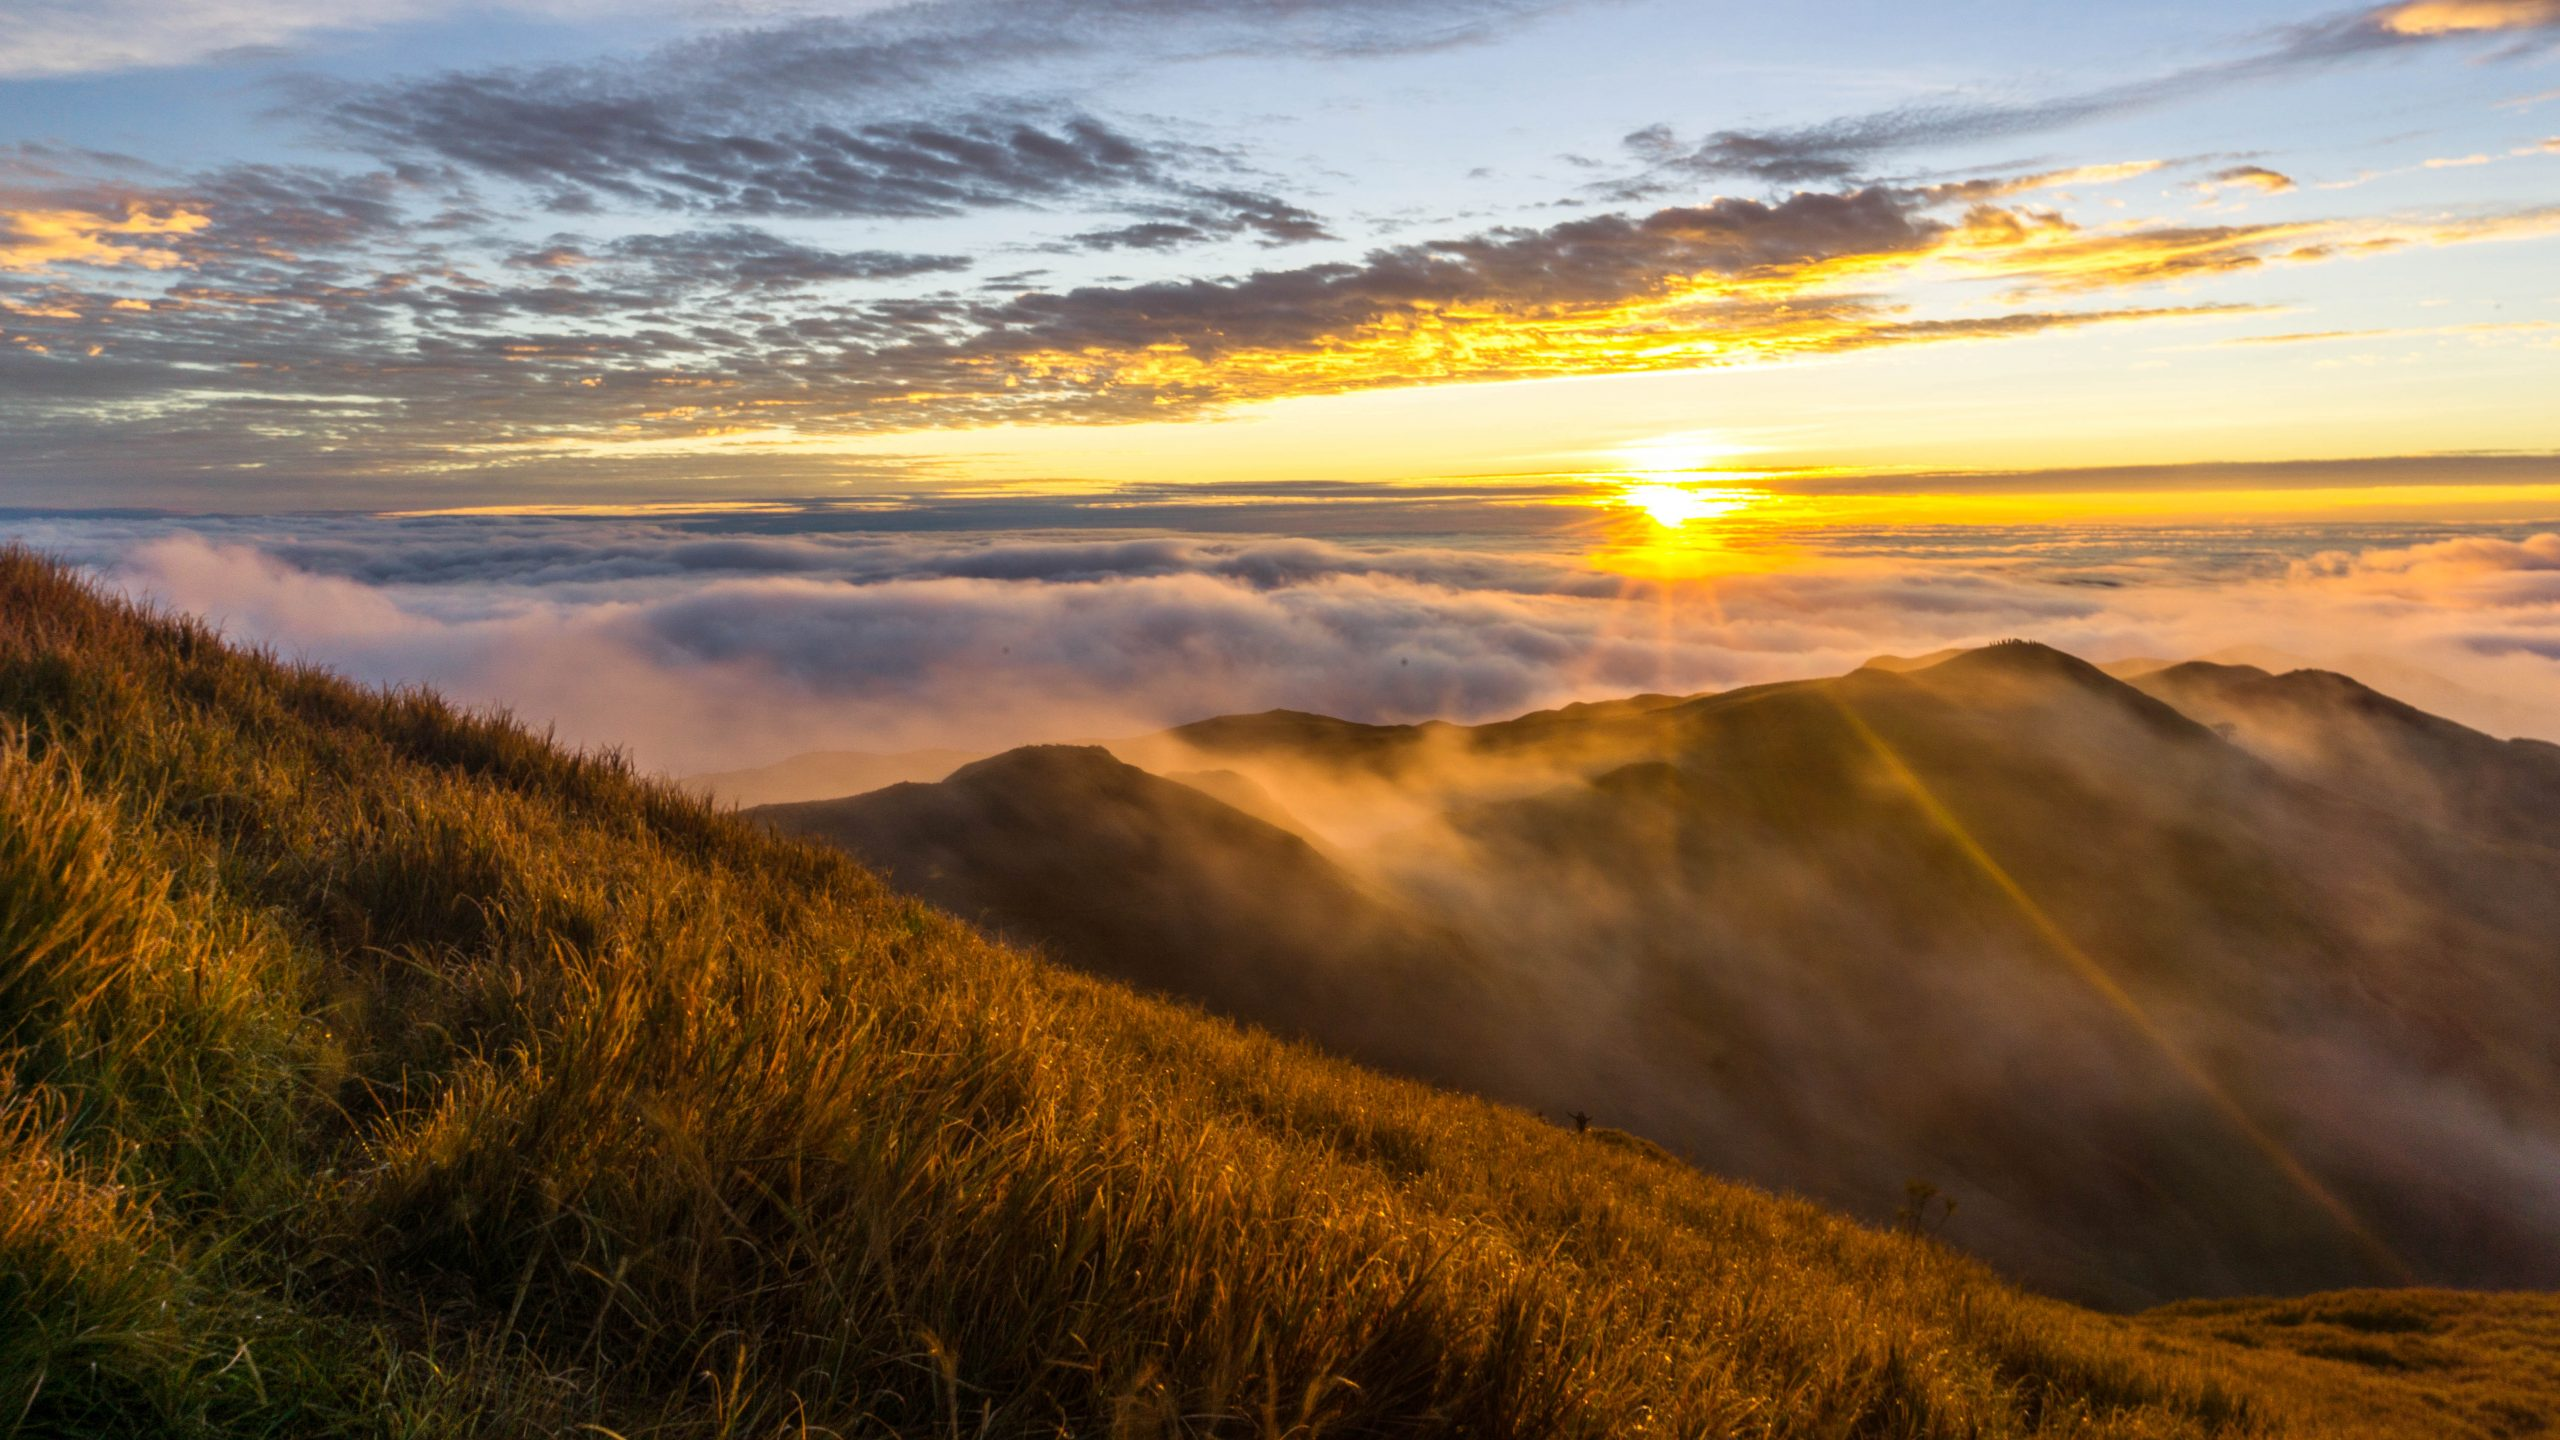 A grassy,mmountainous landscape high above a layer of clouds